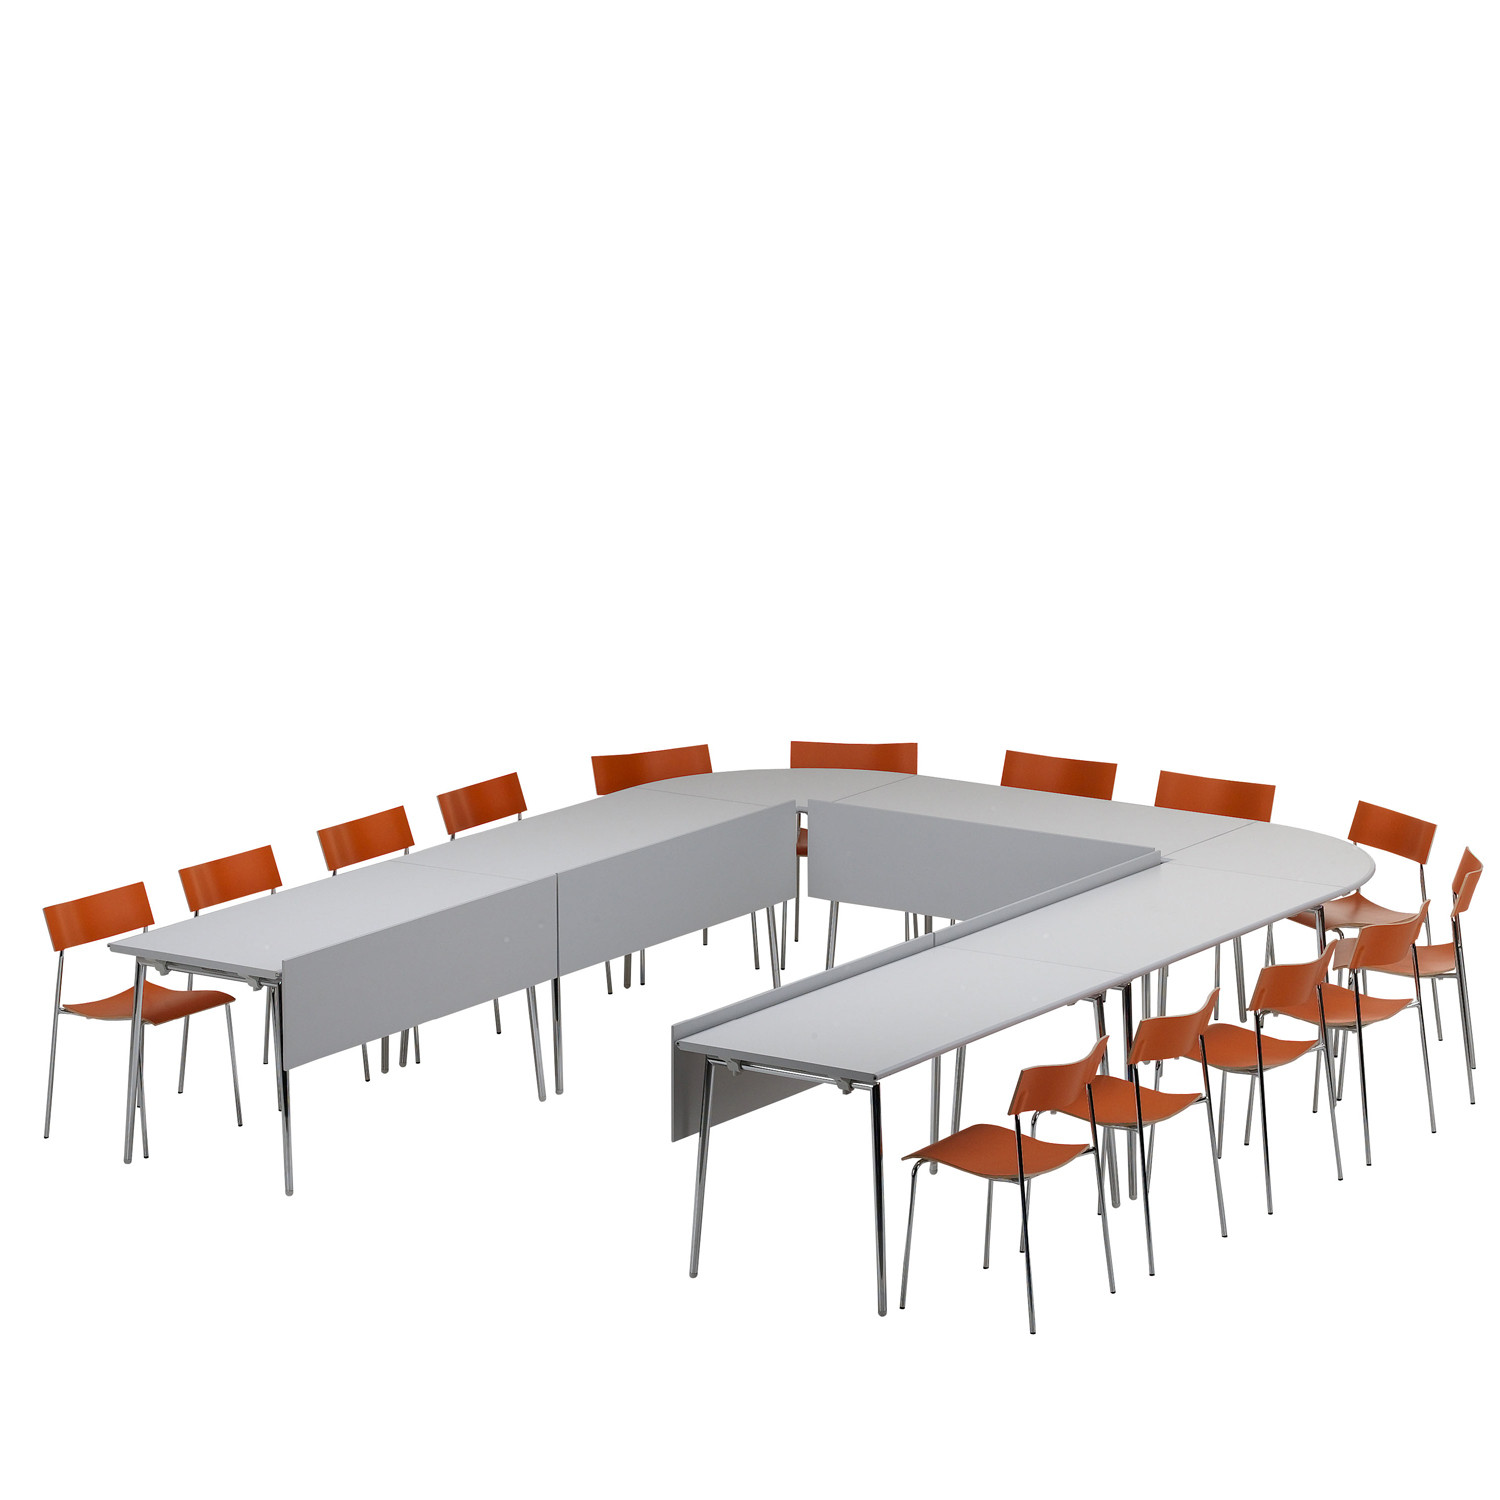 Quickly Table in training configuration